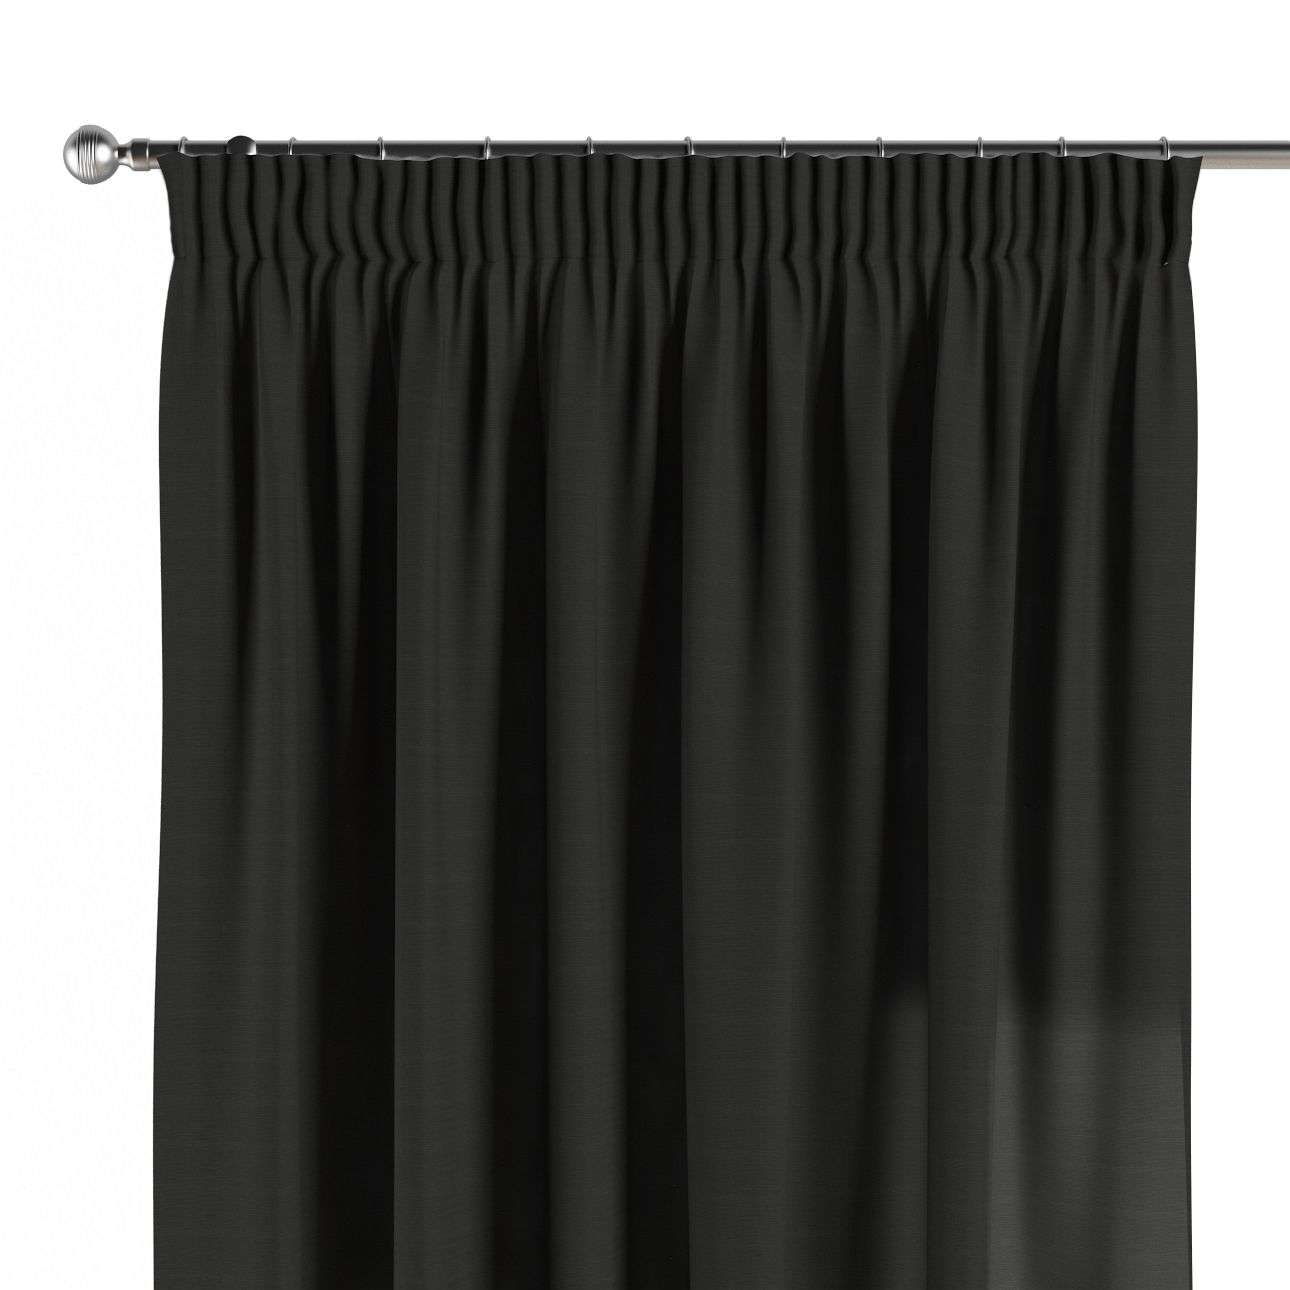 Pencil pleat curtains 130 × 260 cm (51 × 102 inch) in collection Jupiter, fabric: 127-99